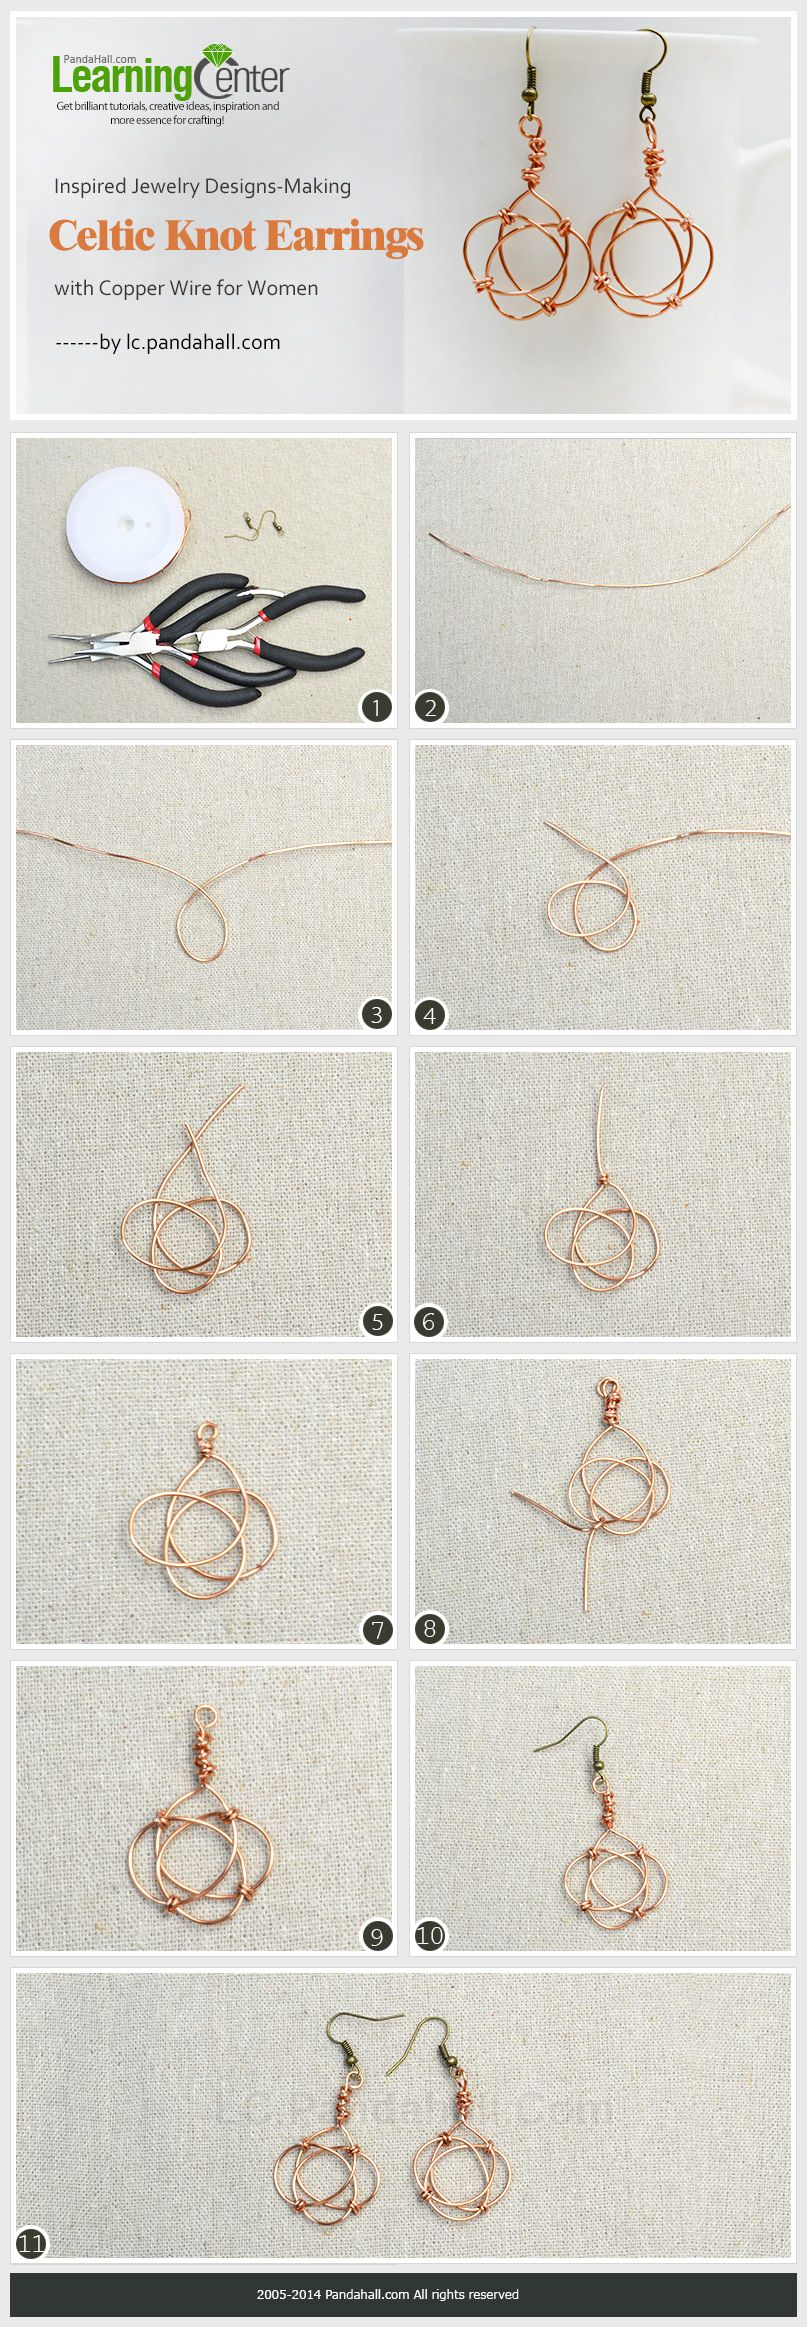 Inspired Jewelry Designs- Making Celtic Knot Earrings with Copper ...